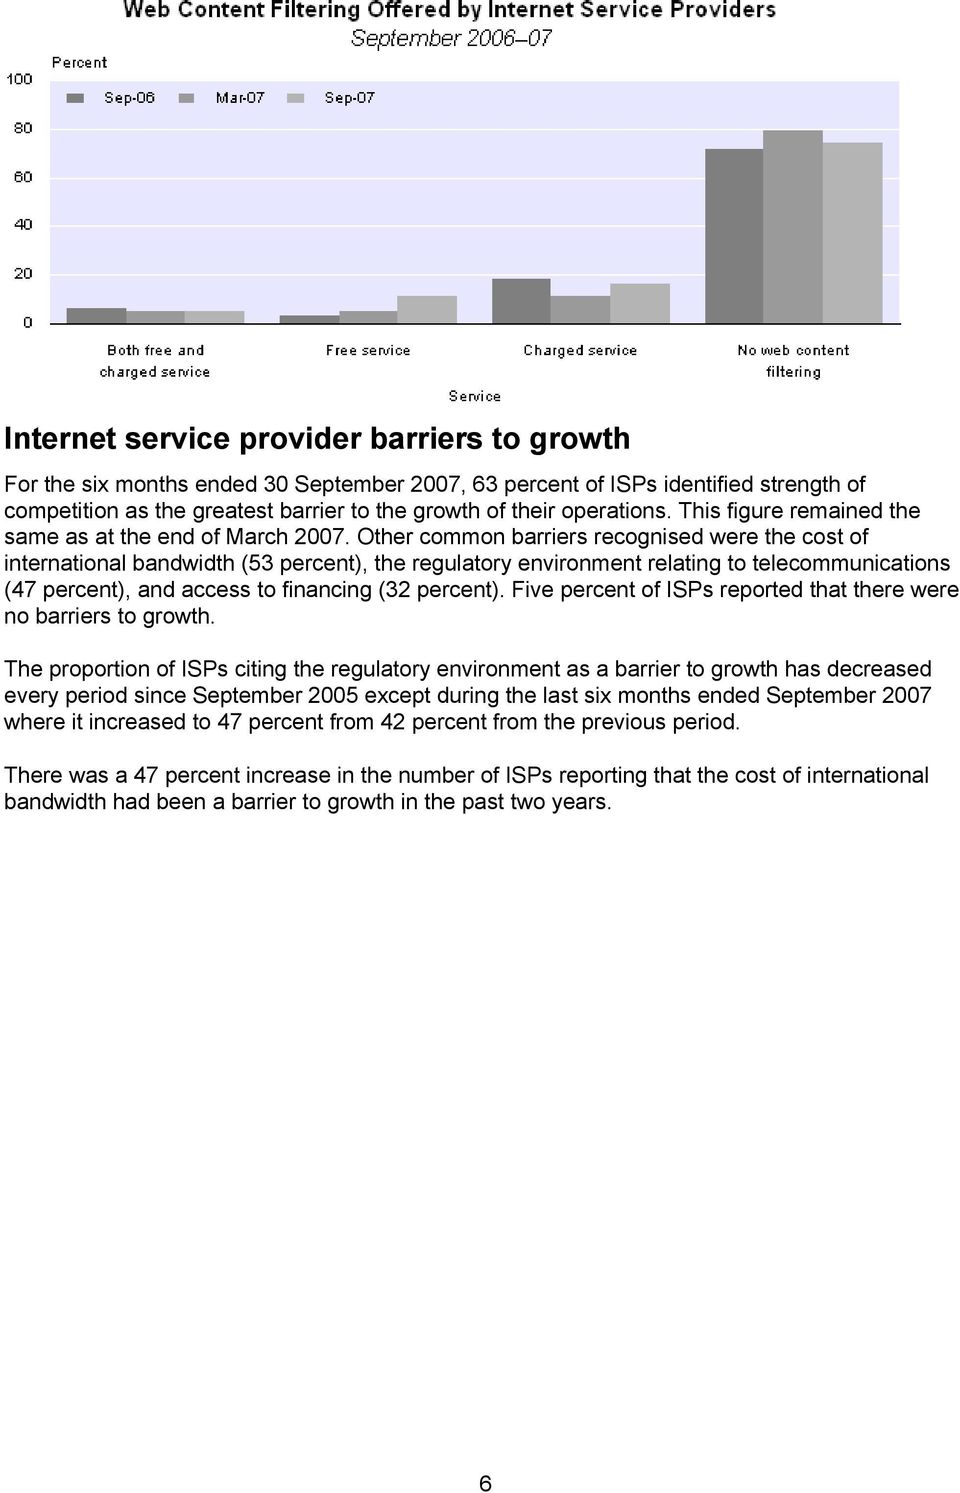 Other common barriers recognised were the cost of international bandwidth (53 percent), the regulatory environment relating to telecommunications (47 percent), and access to financing (32 percent).